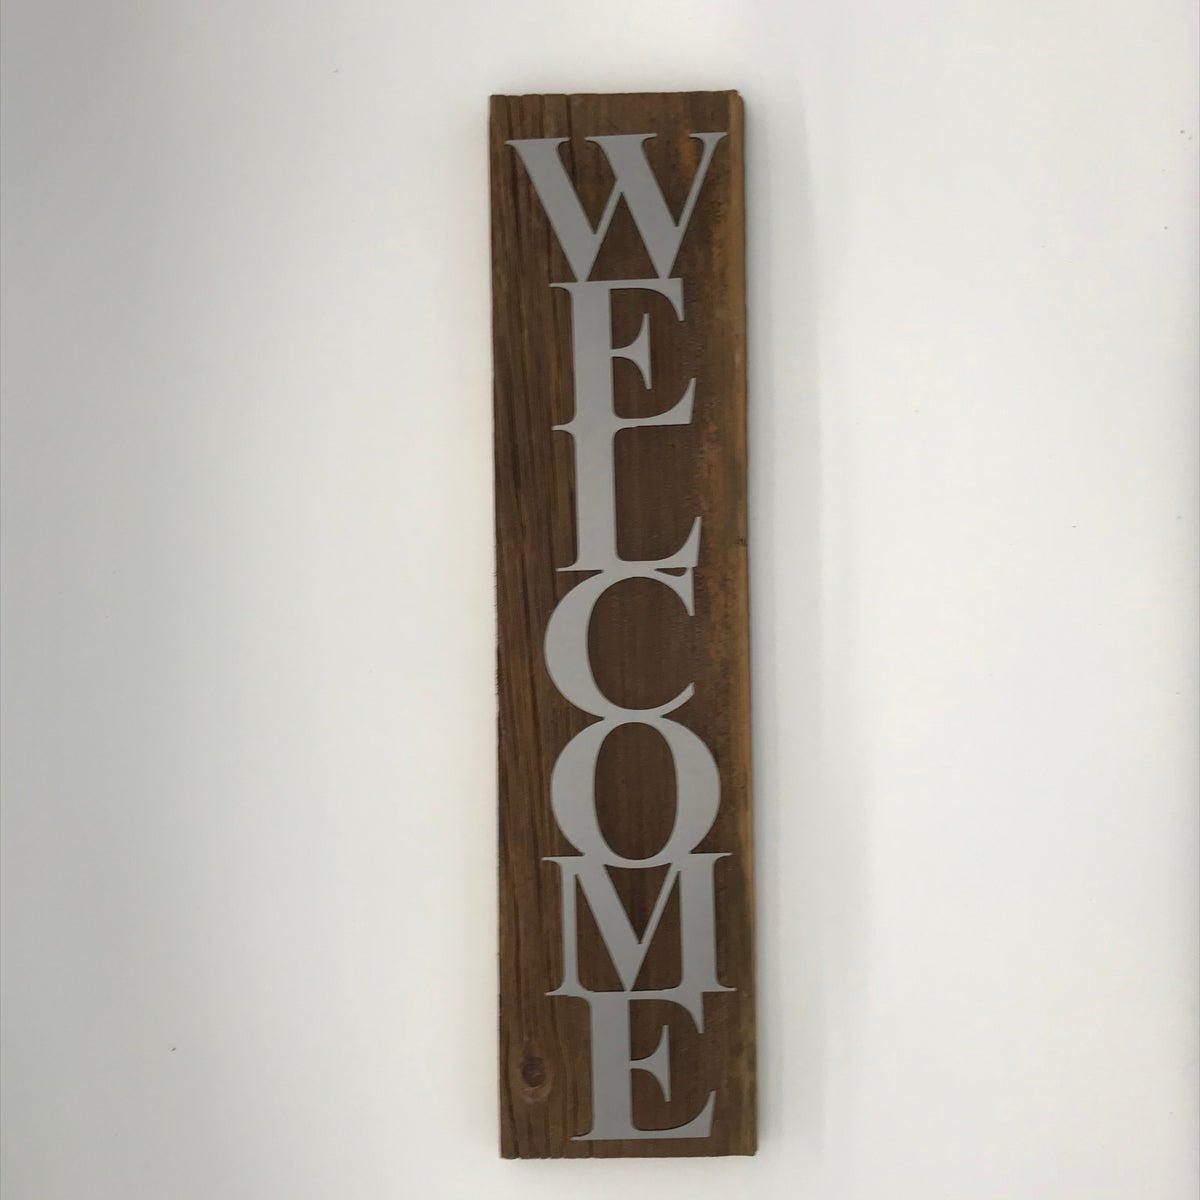 Welcome on Barnwood with Block Text